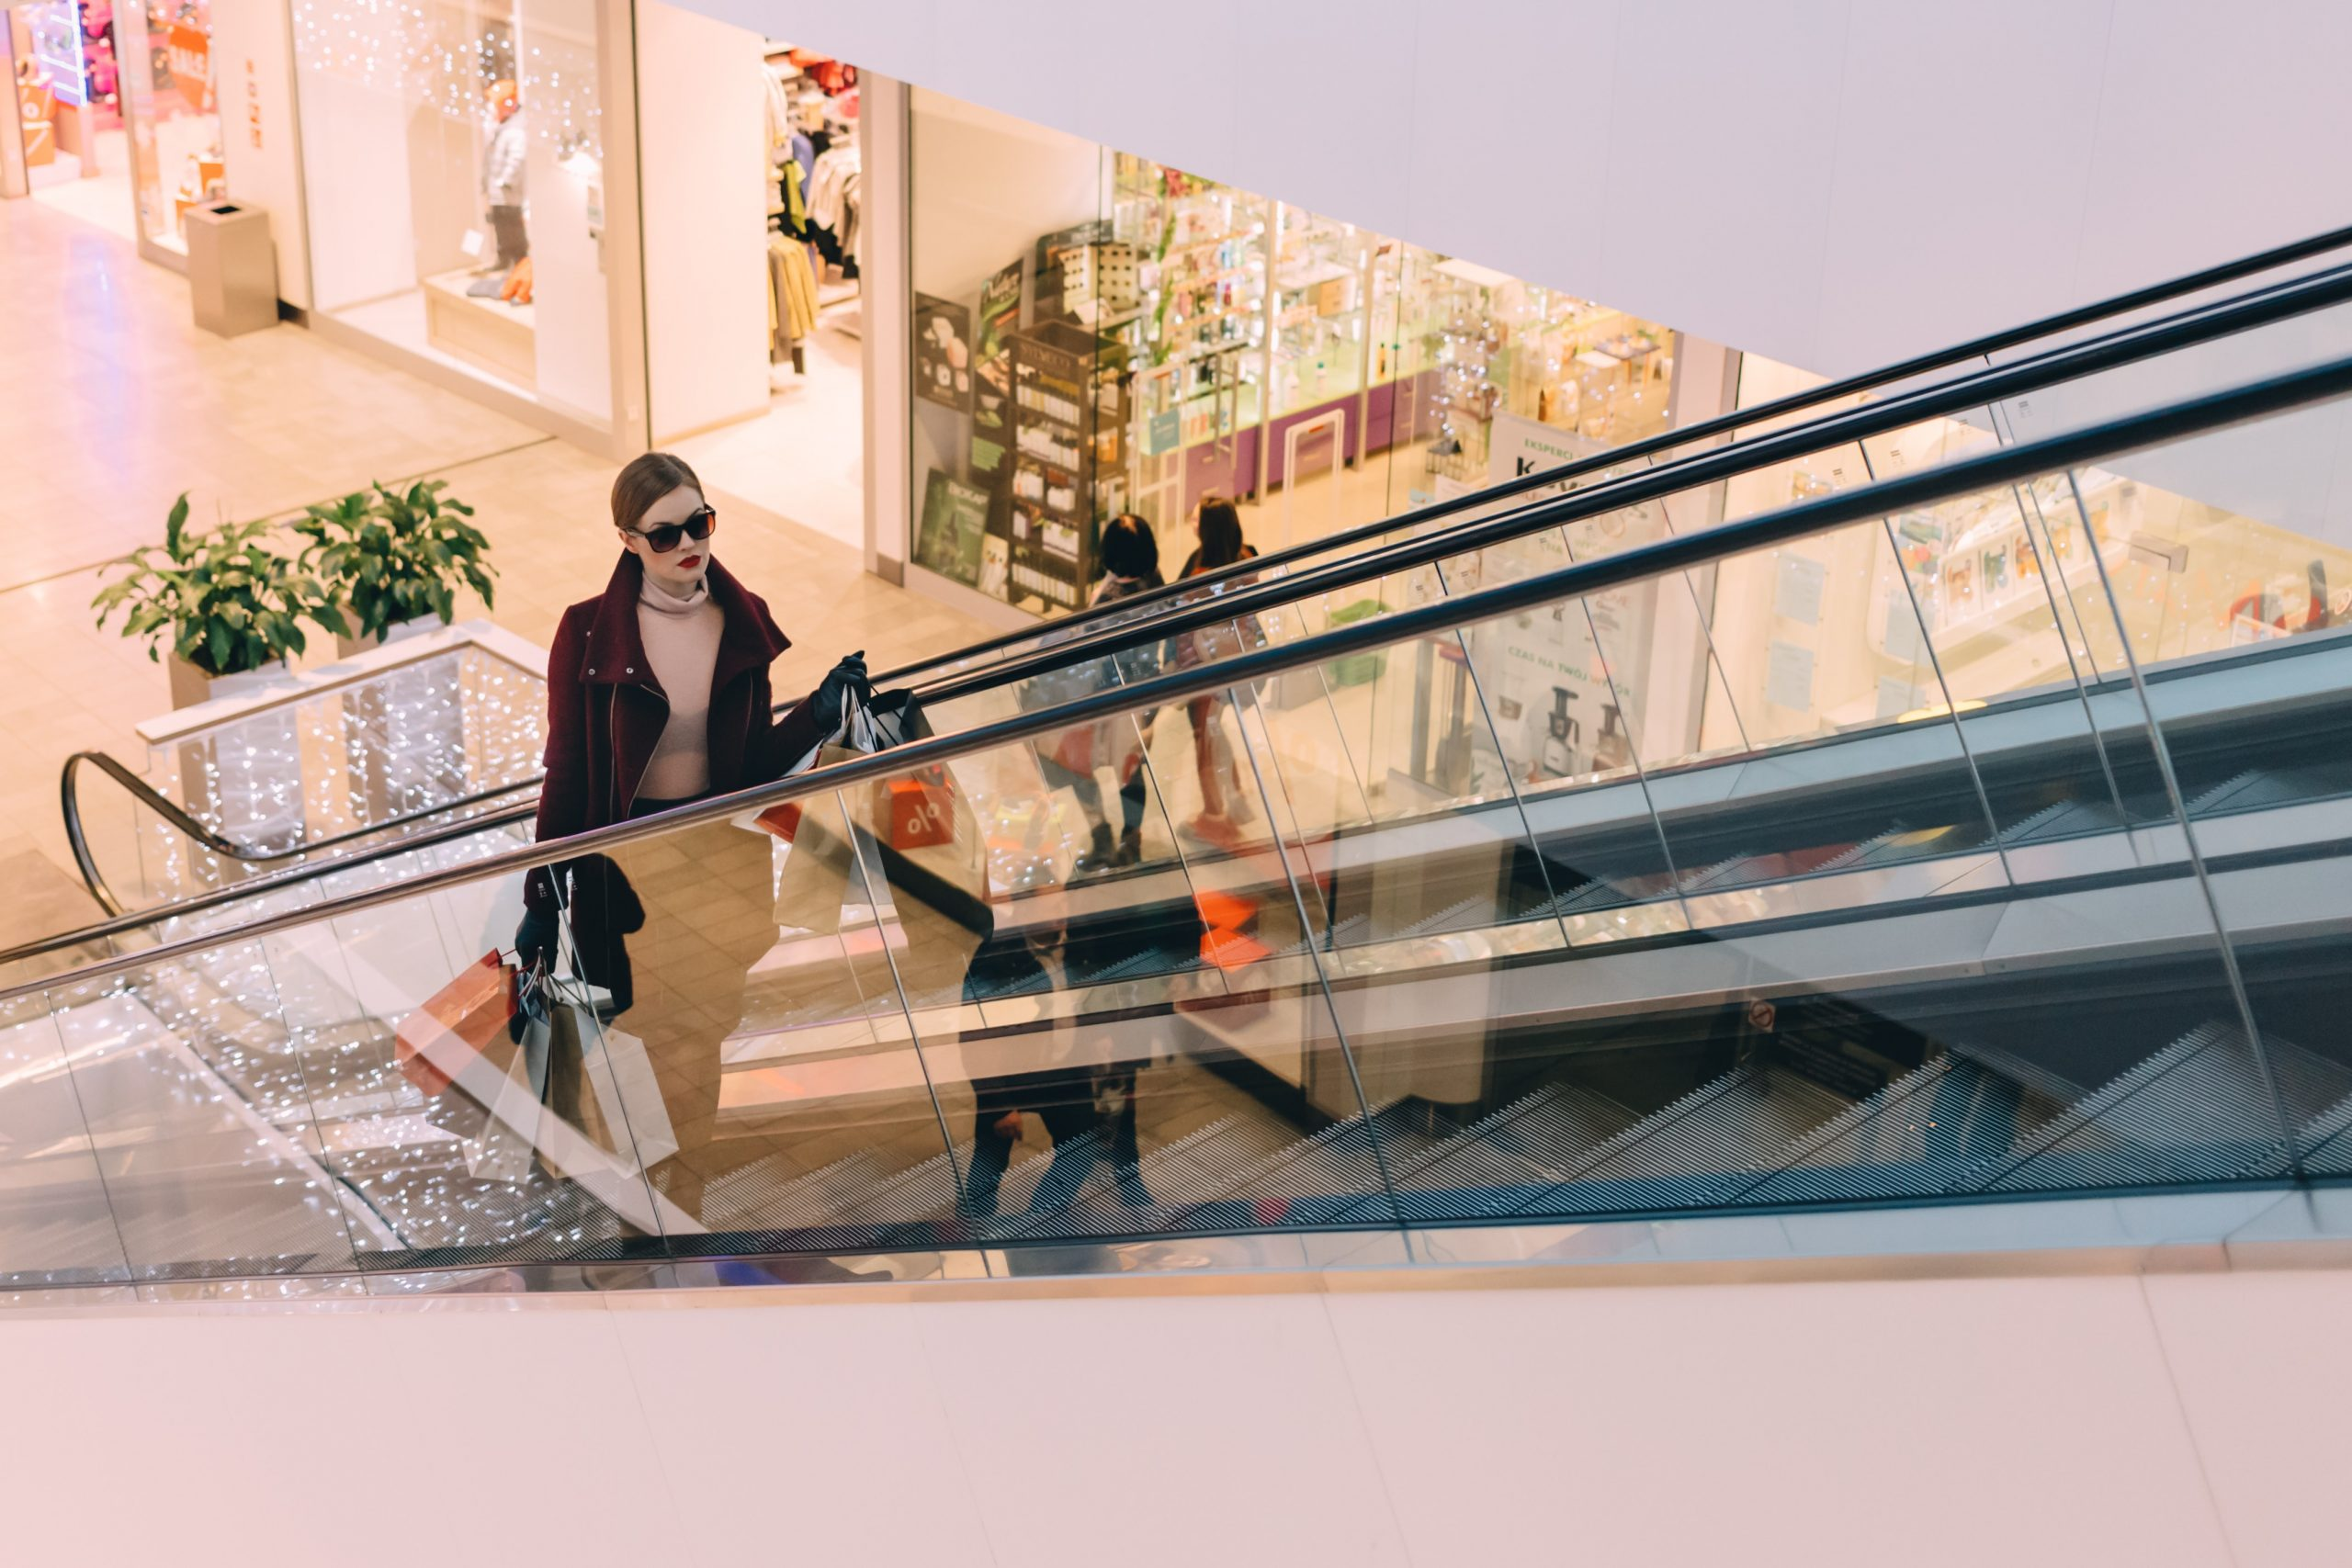 woman with shopping bags going up escalator in shopping mall